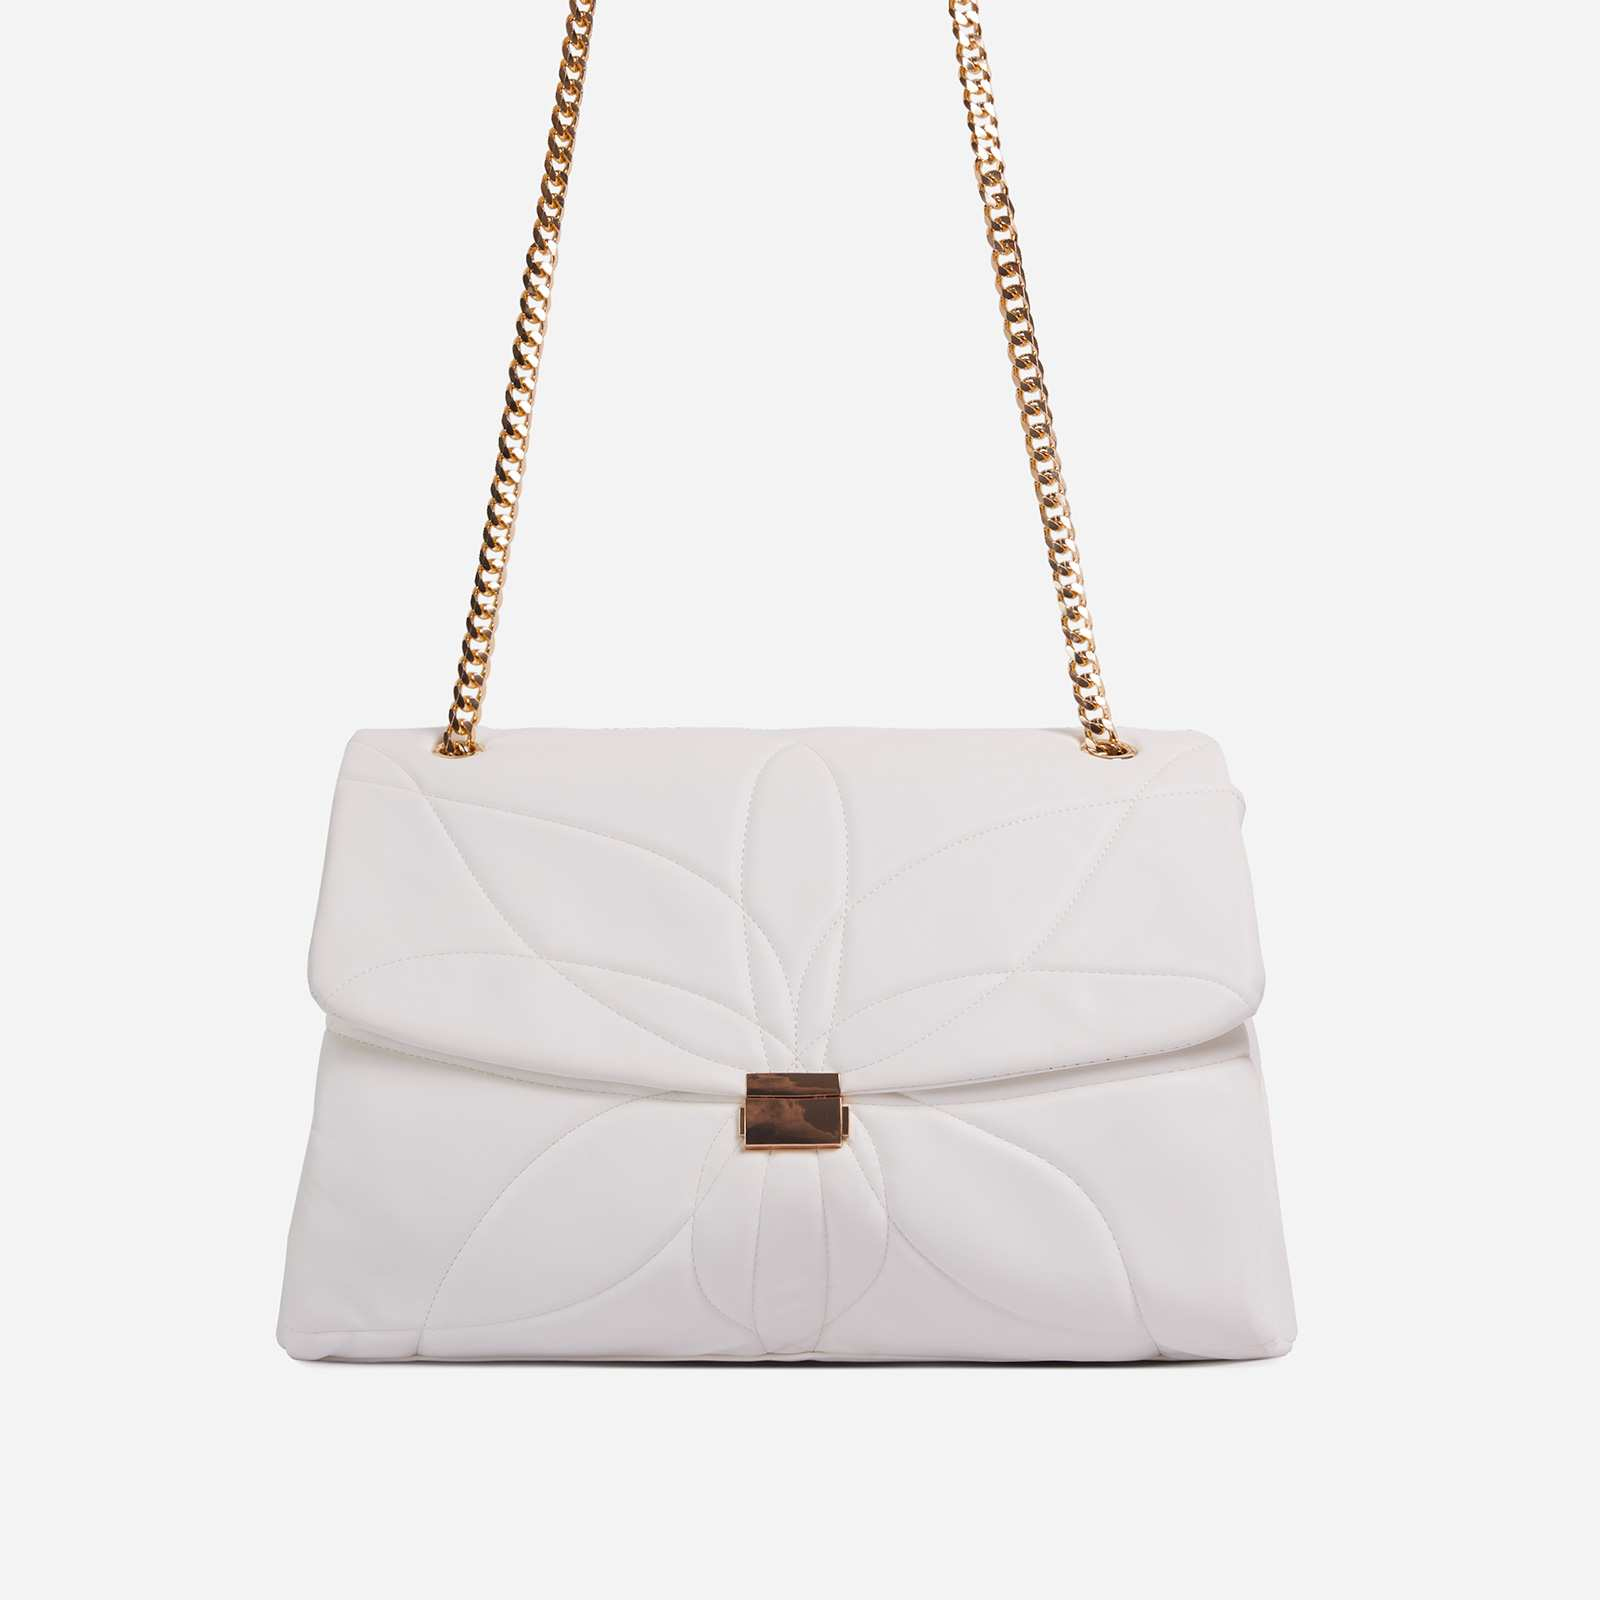 Liquor Chain Handle Detail Oversized Shoulder Bag In White Faux Leather